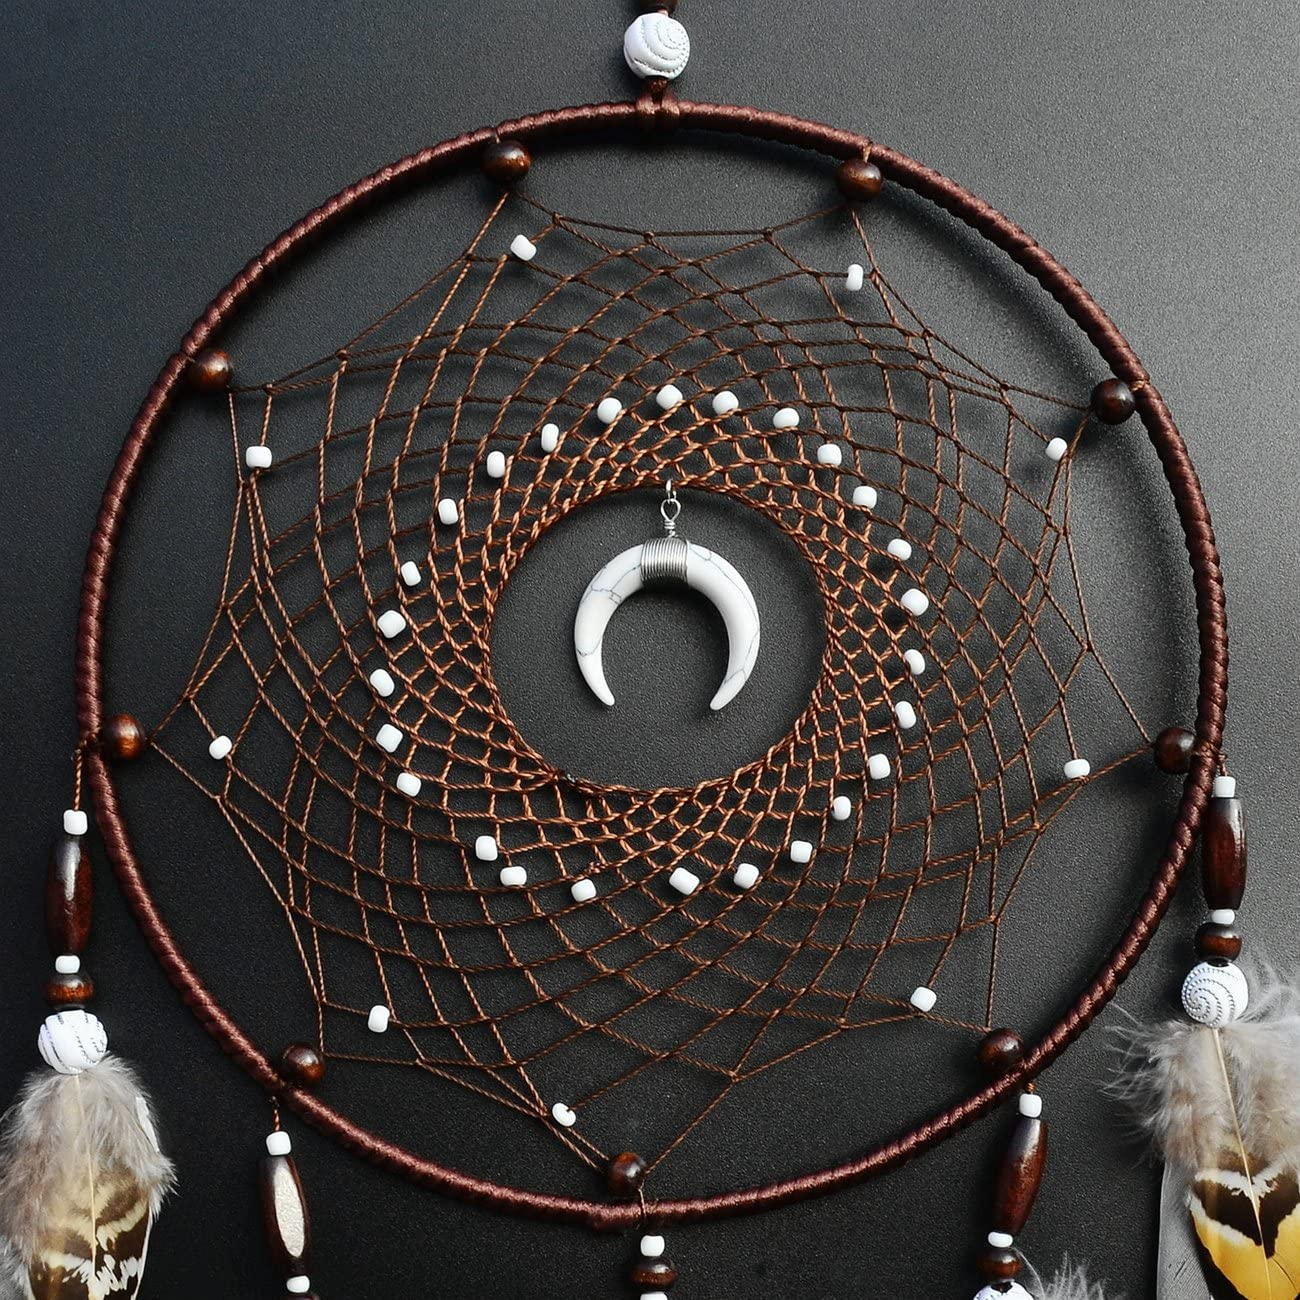 Littlear Dream Catcher Handmade Wall Hanging Decor Large Dream Catchers with Feathers Dia 7.9 NO.9